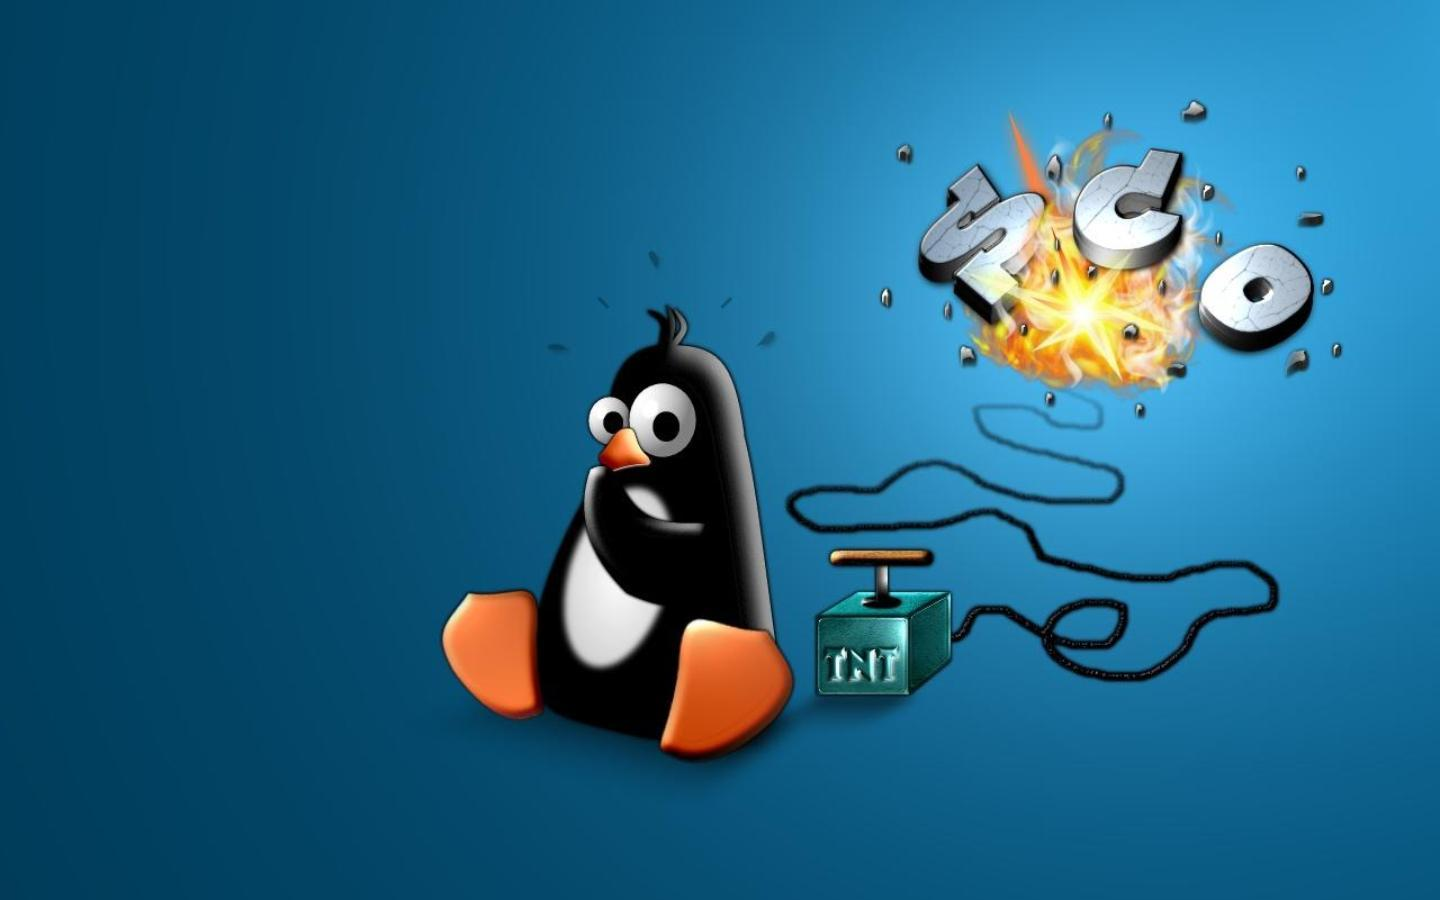 Funny Linux Wallpapers - First HD Wallpapers